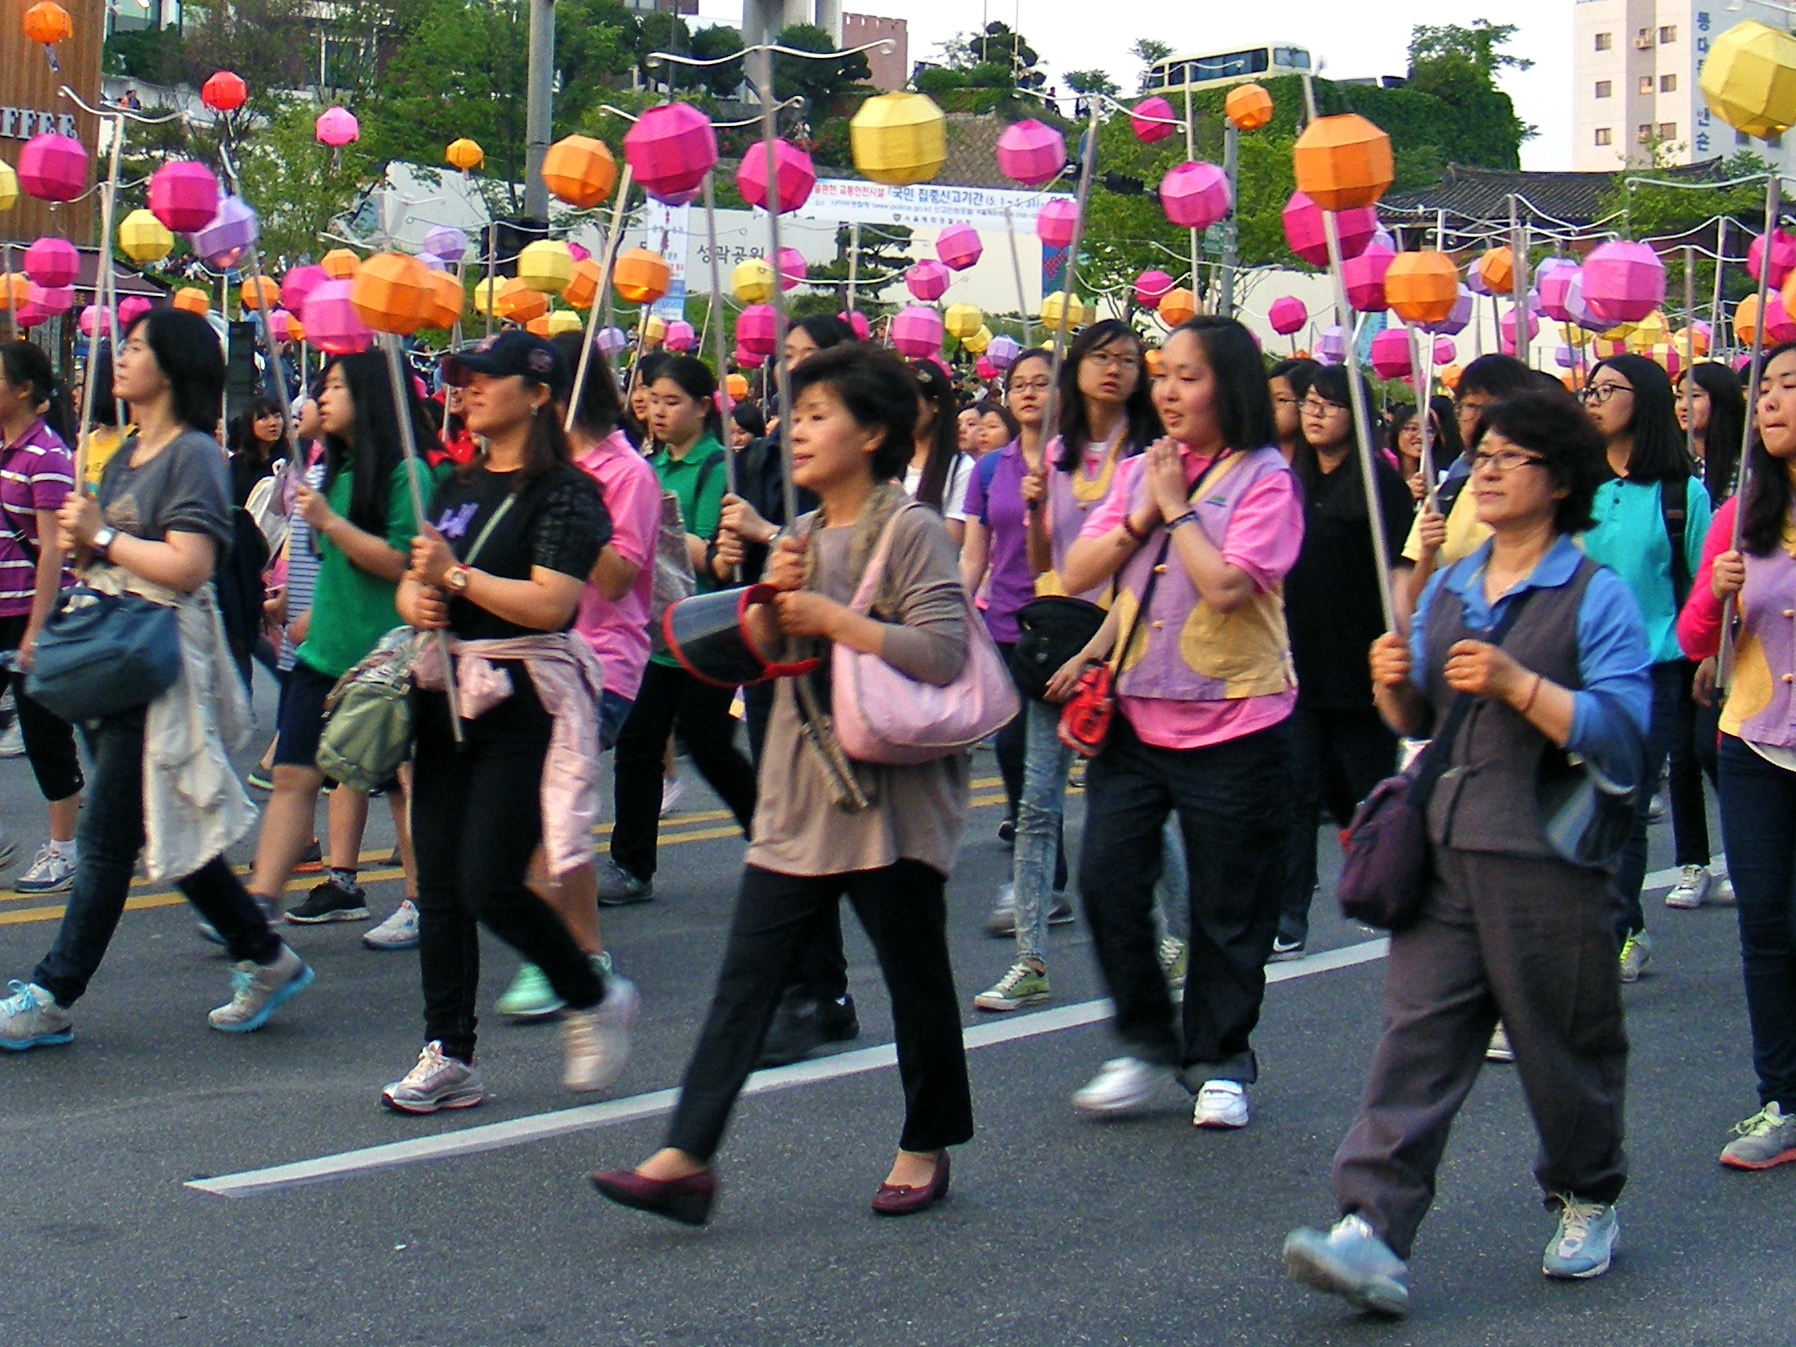 Lotus Lantern Parade in Seoul